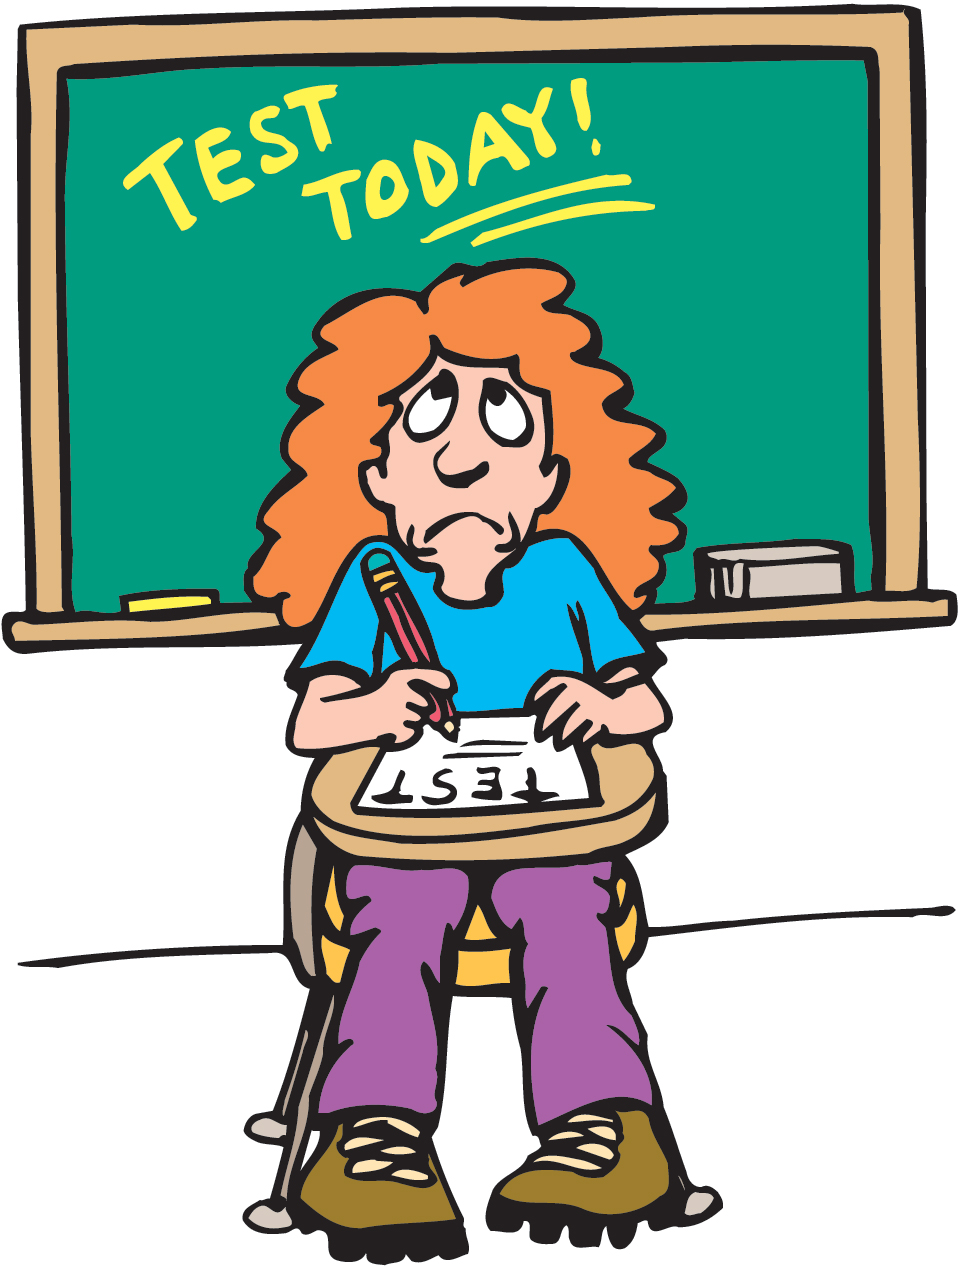 test anxiety clipart - photo #30